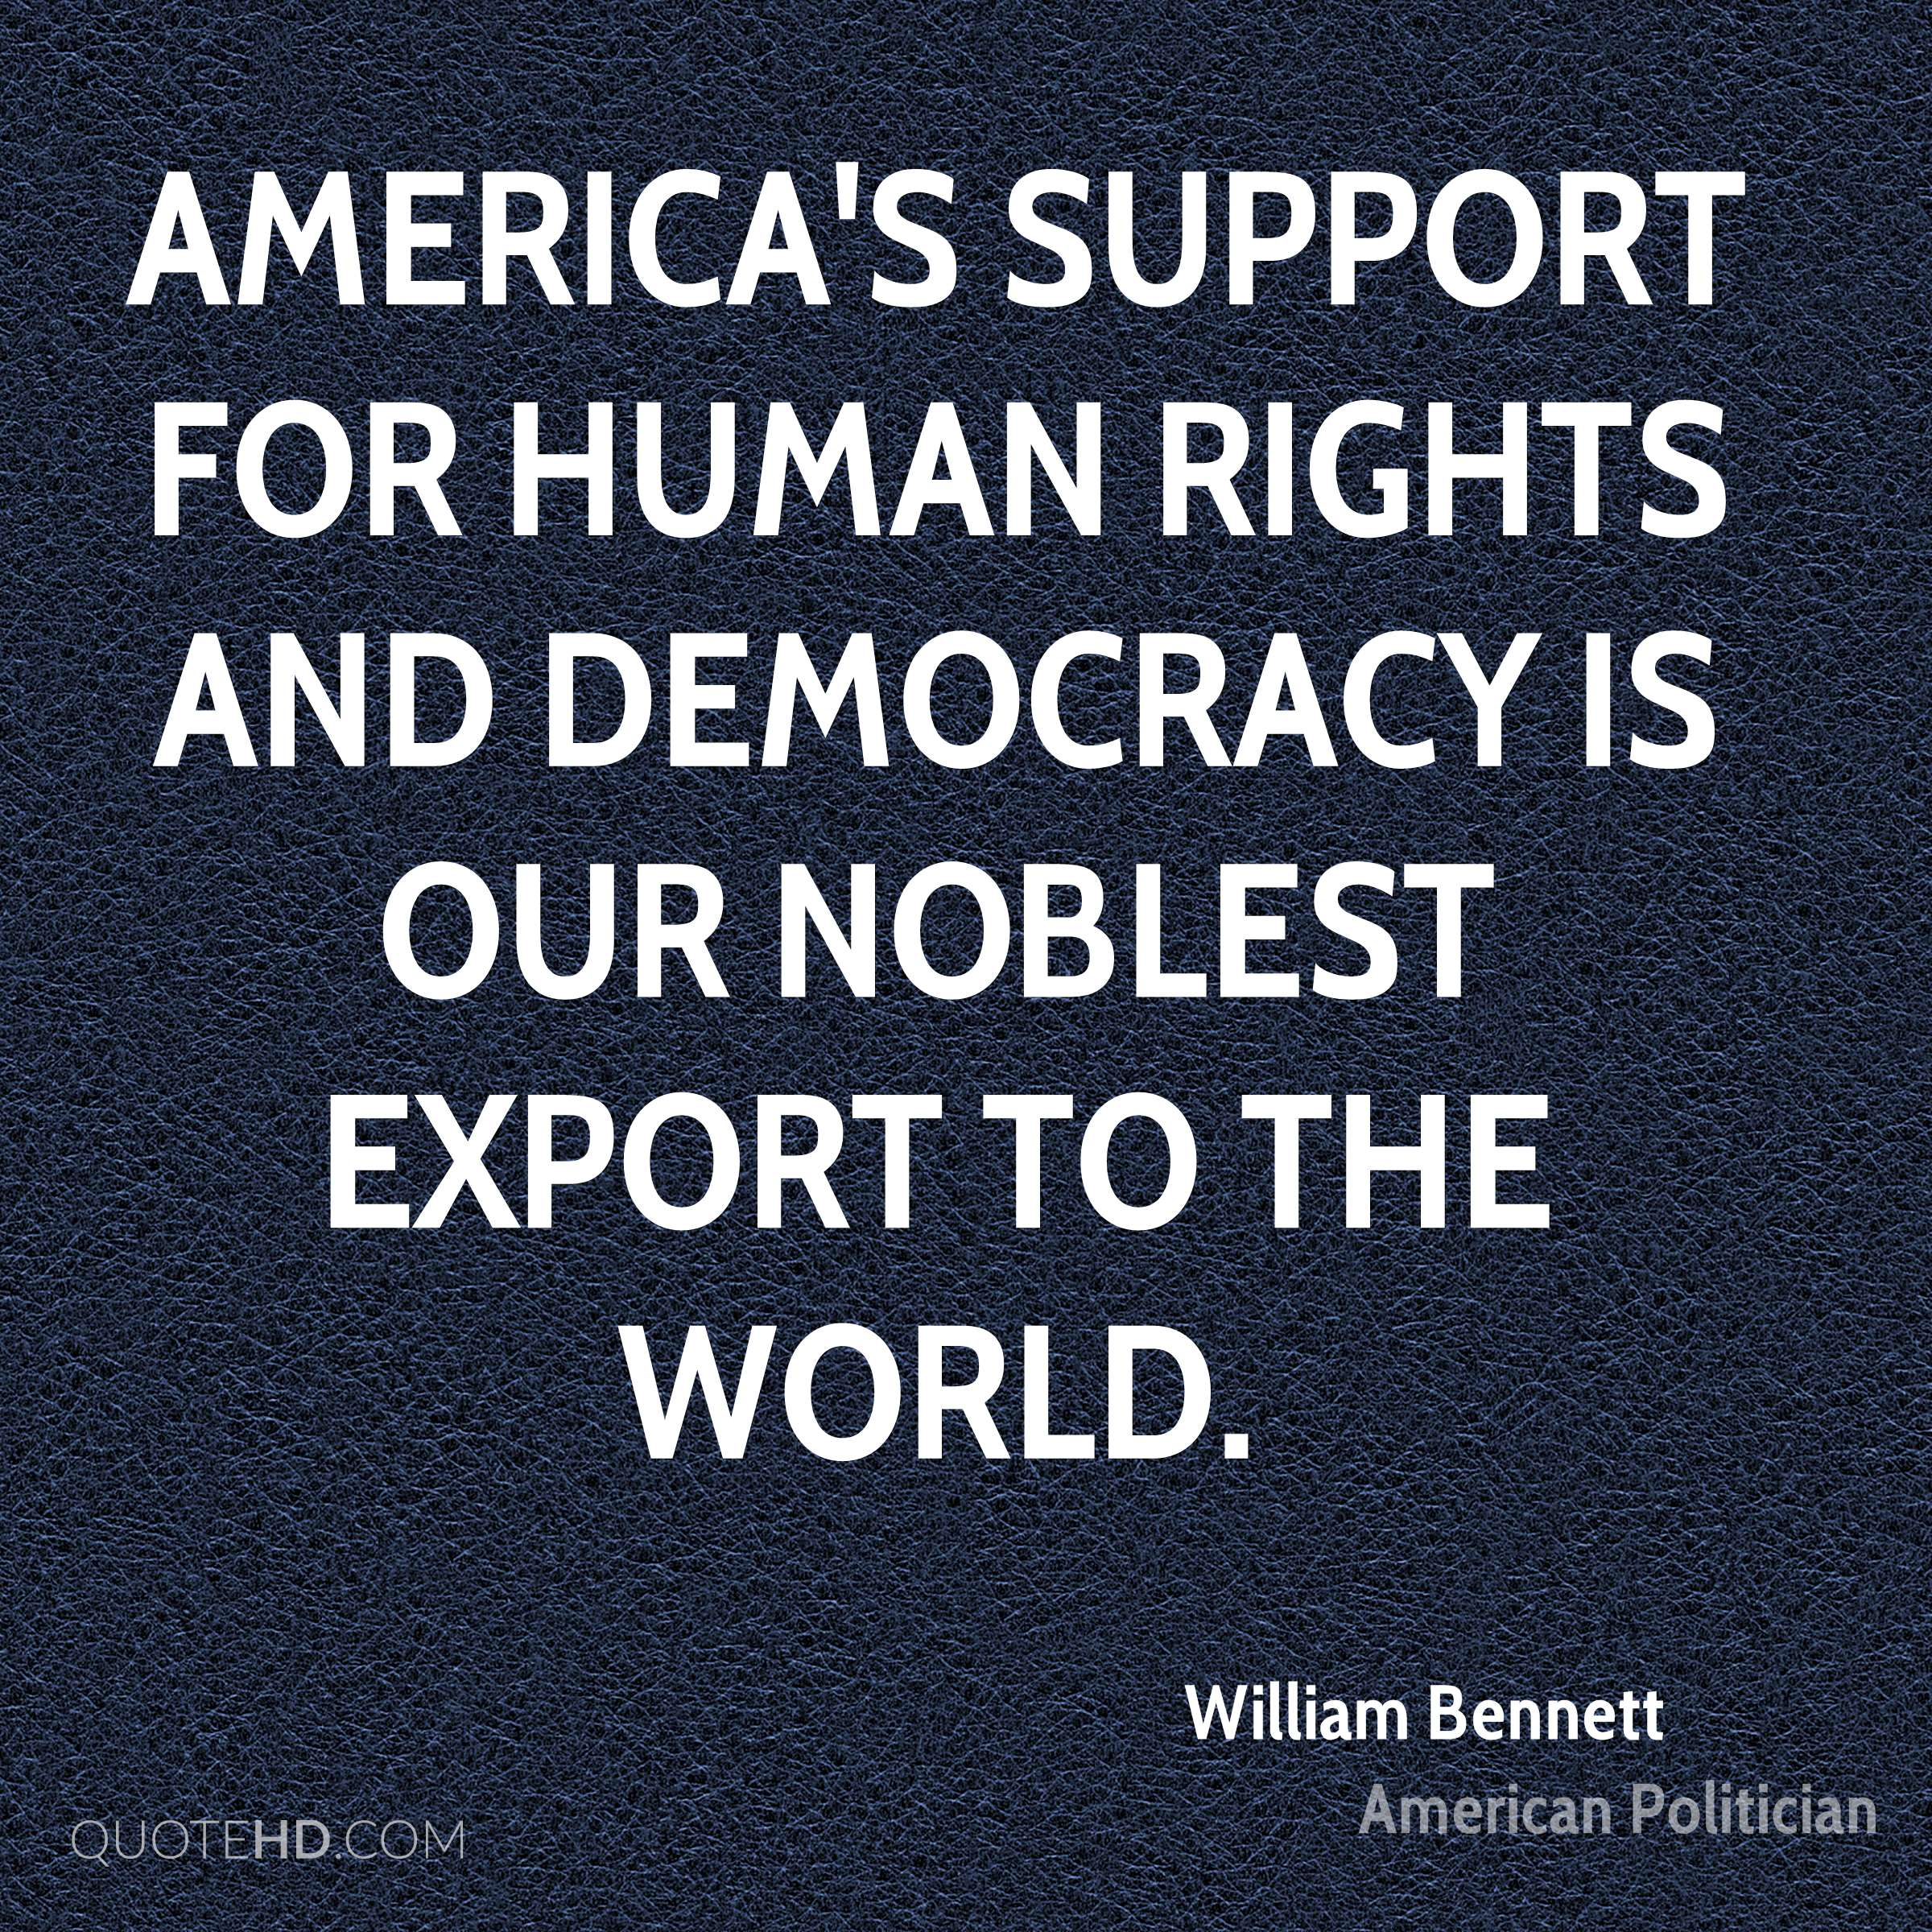 America's support for human rights and democracy is our noblest export to the world.